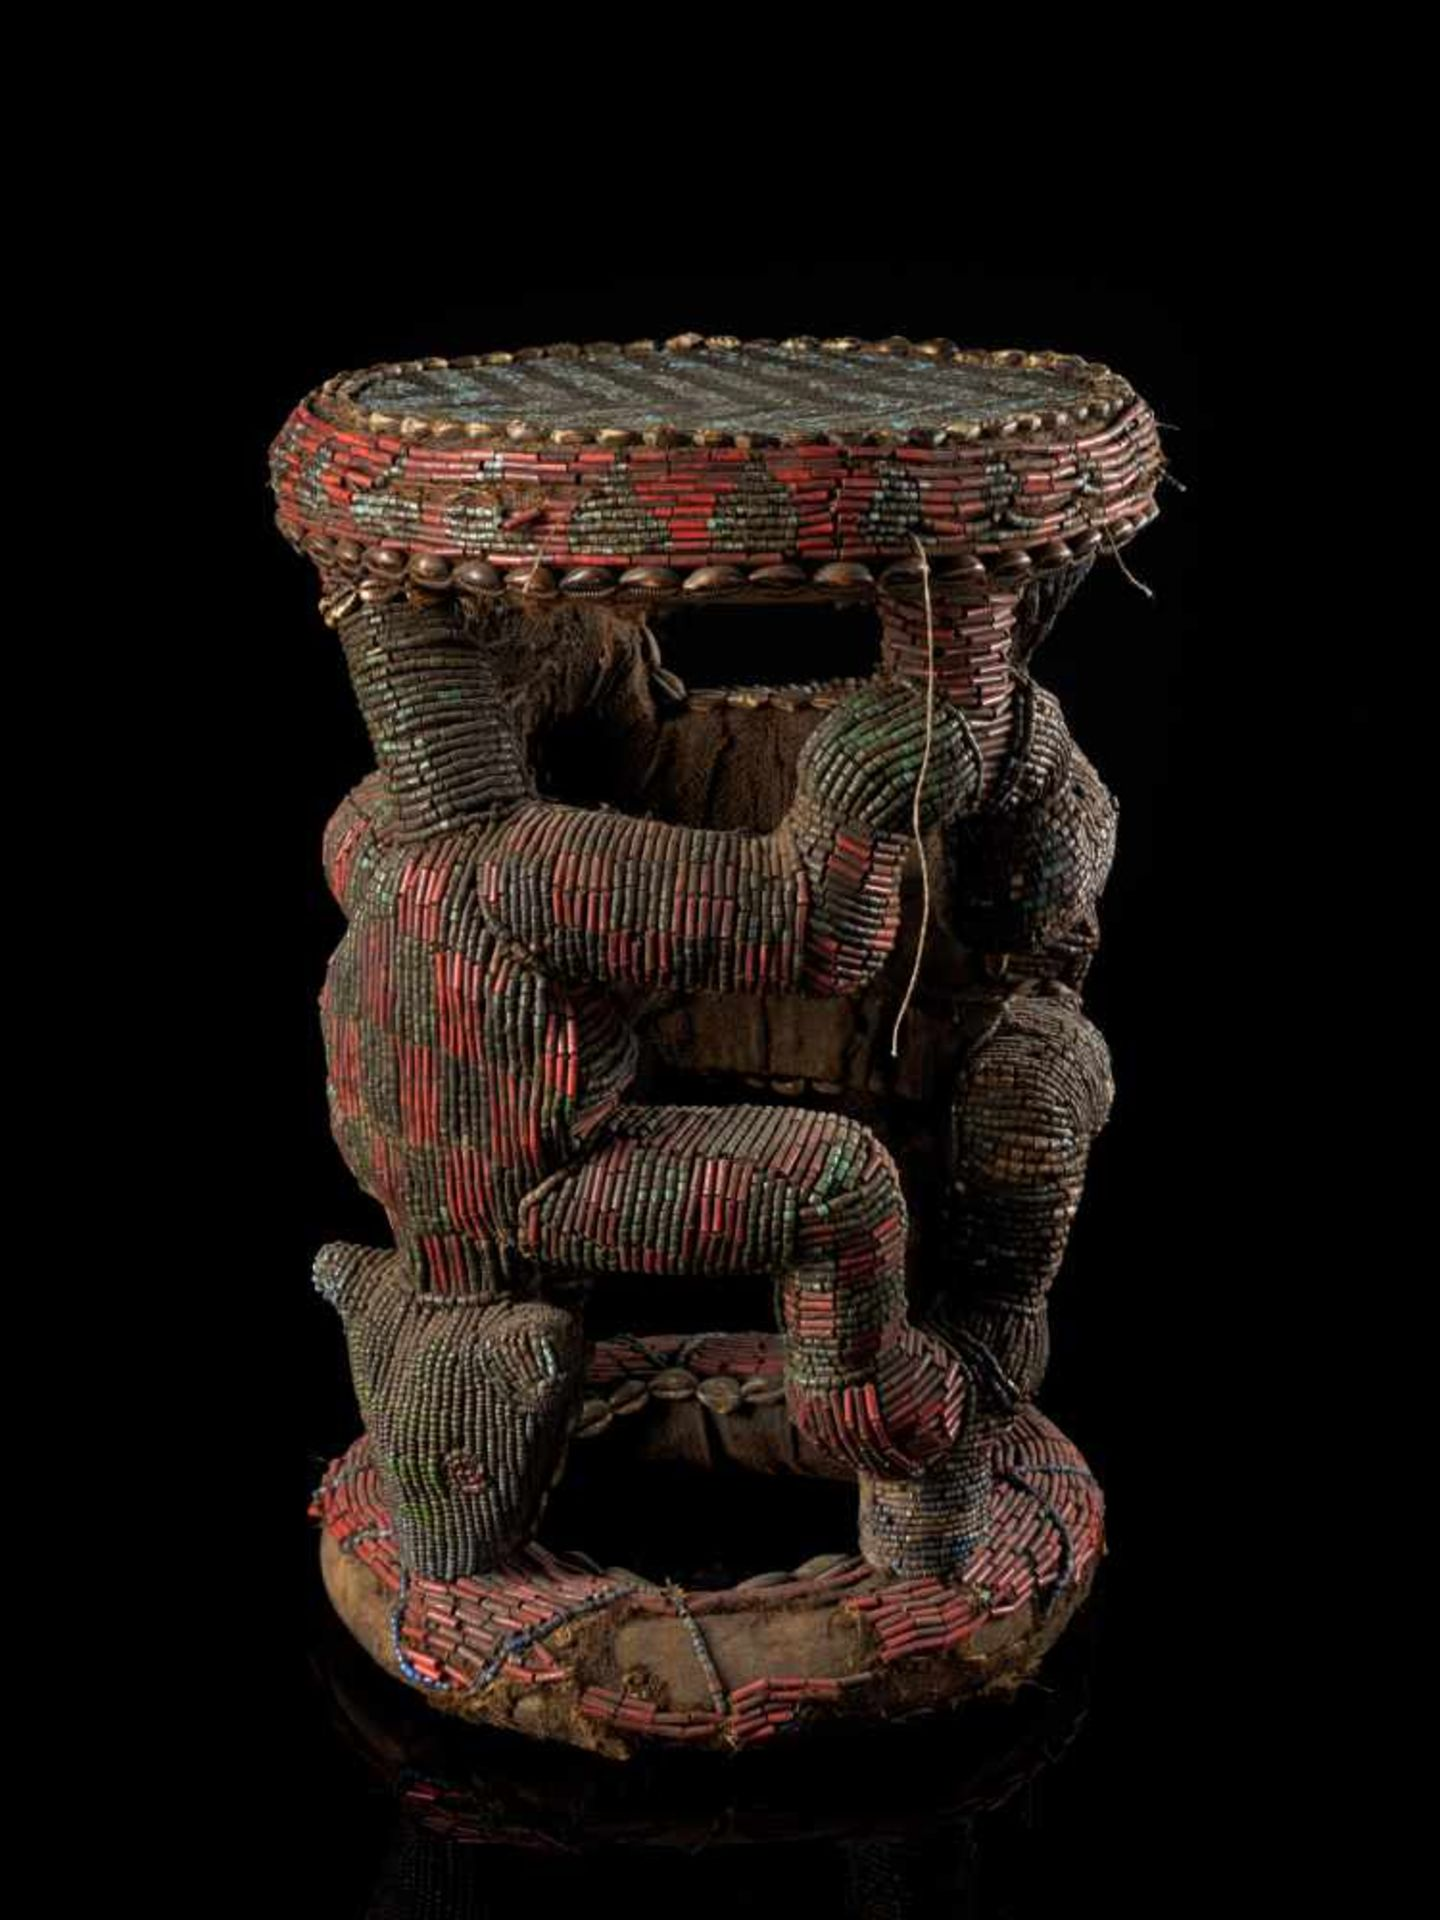 Beaded Royal Stool Supported By Two Leopards - Tribal ArtThis stunning stool has a round base and - Bild 5 aus 5